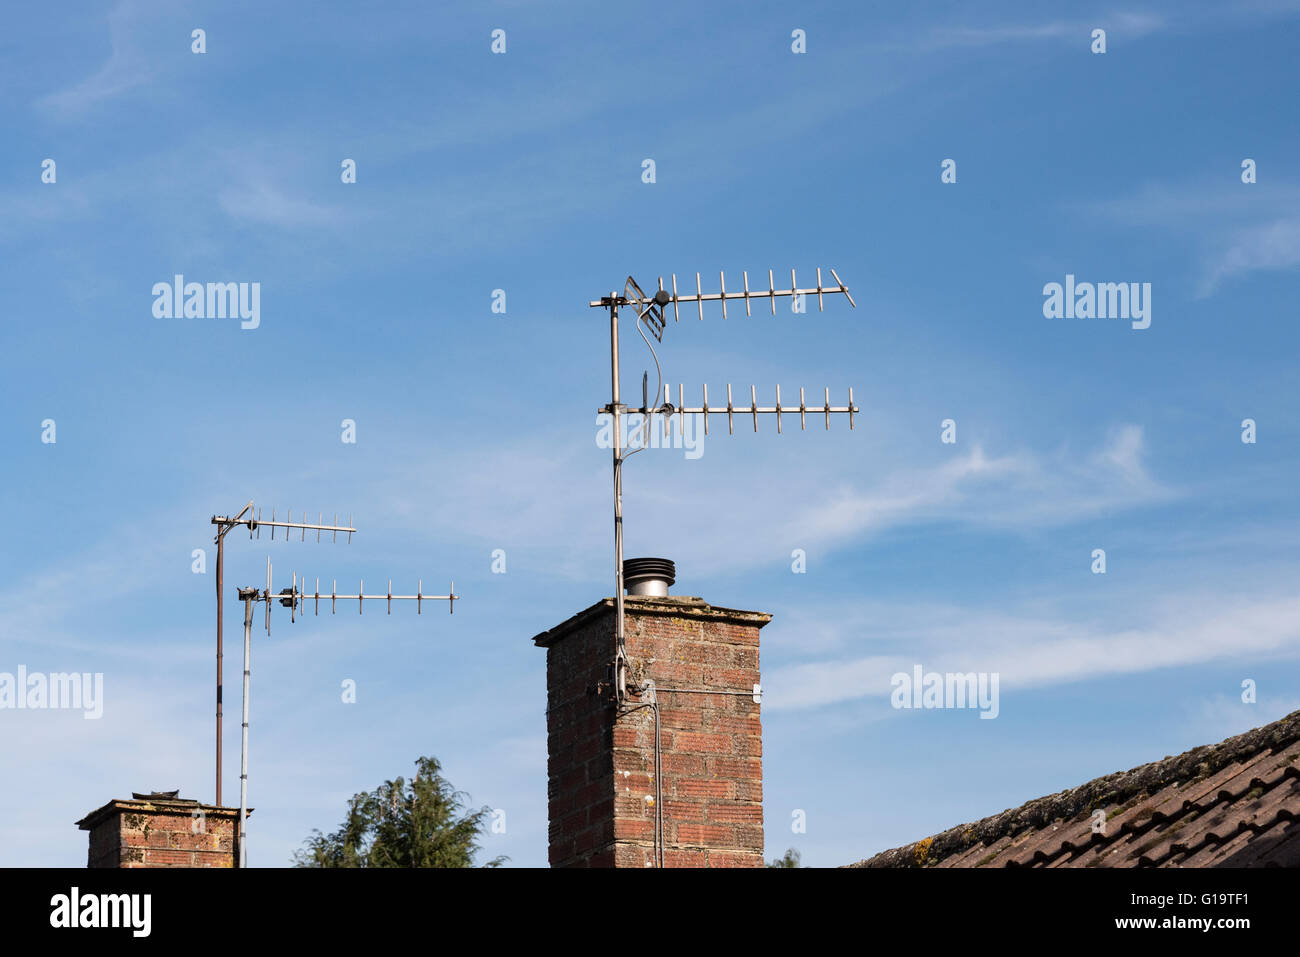 TV aerials on residential house chimney. - Stock Image